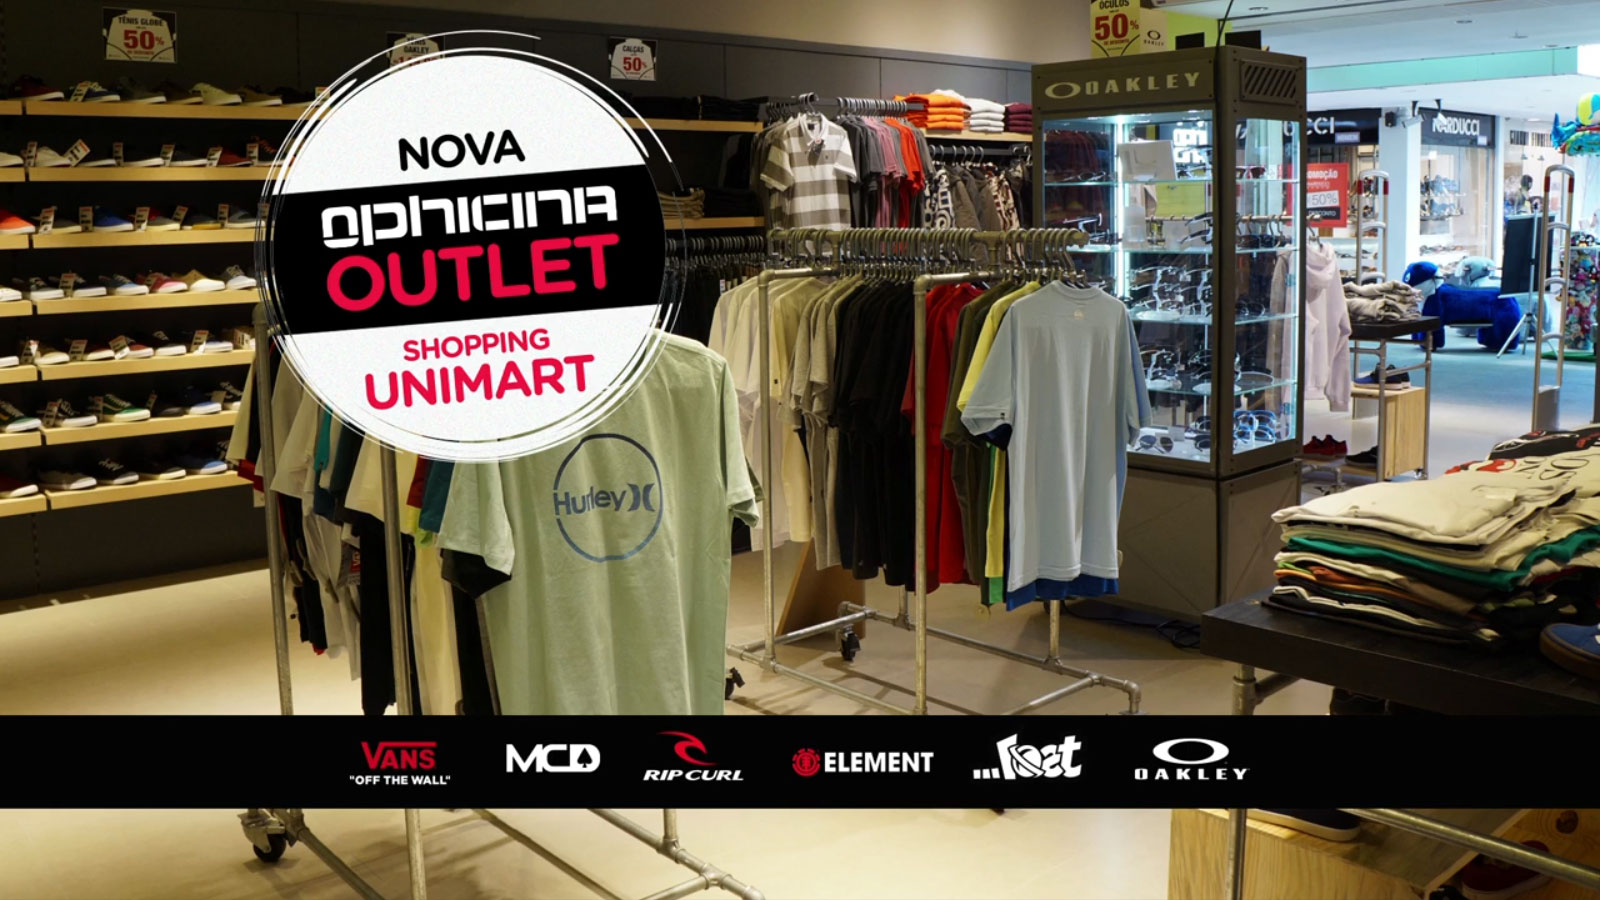 Campanha Outlet Ophicina